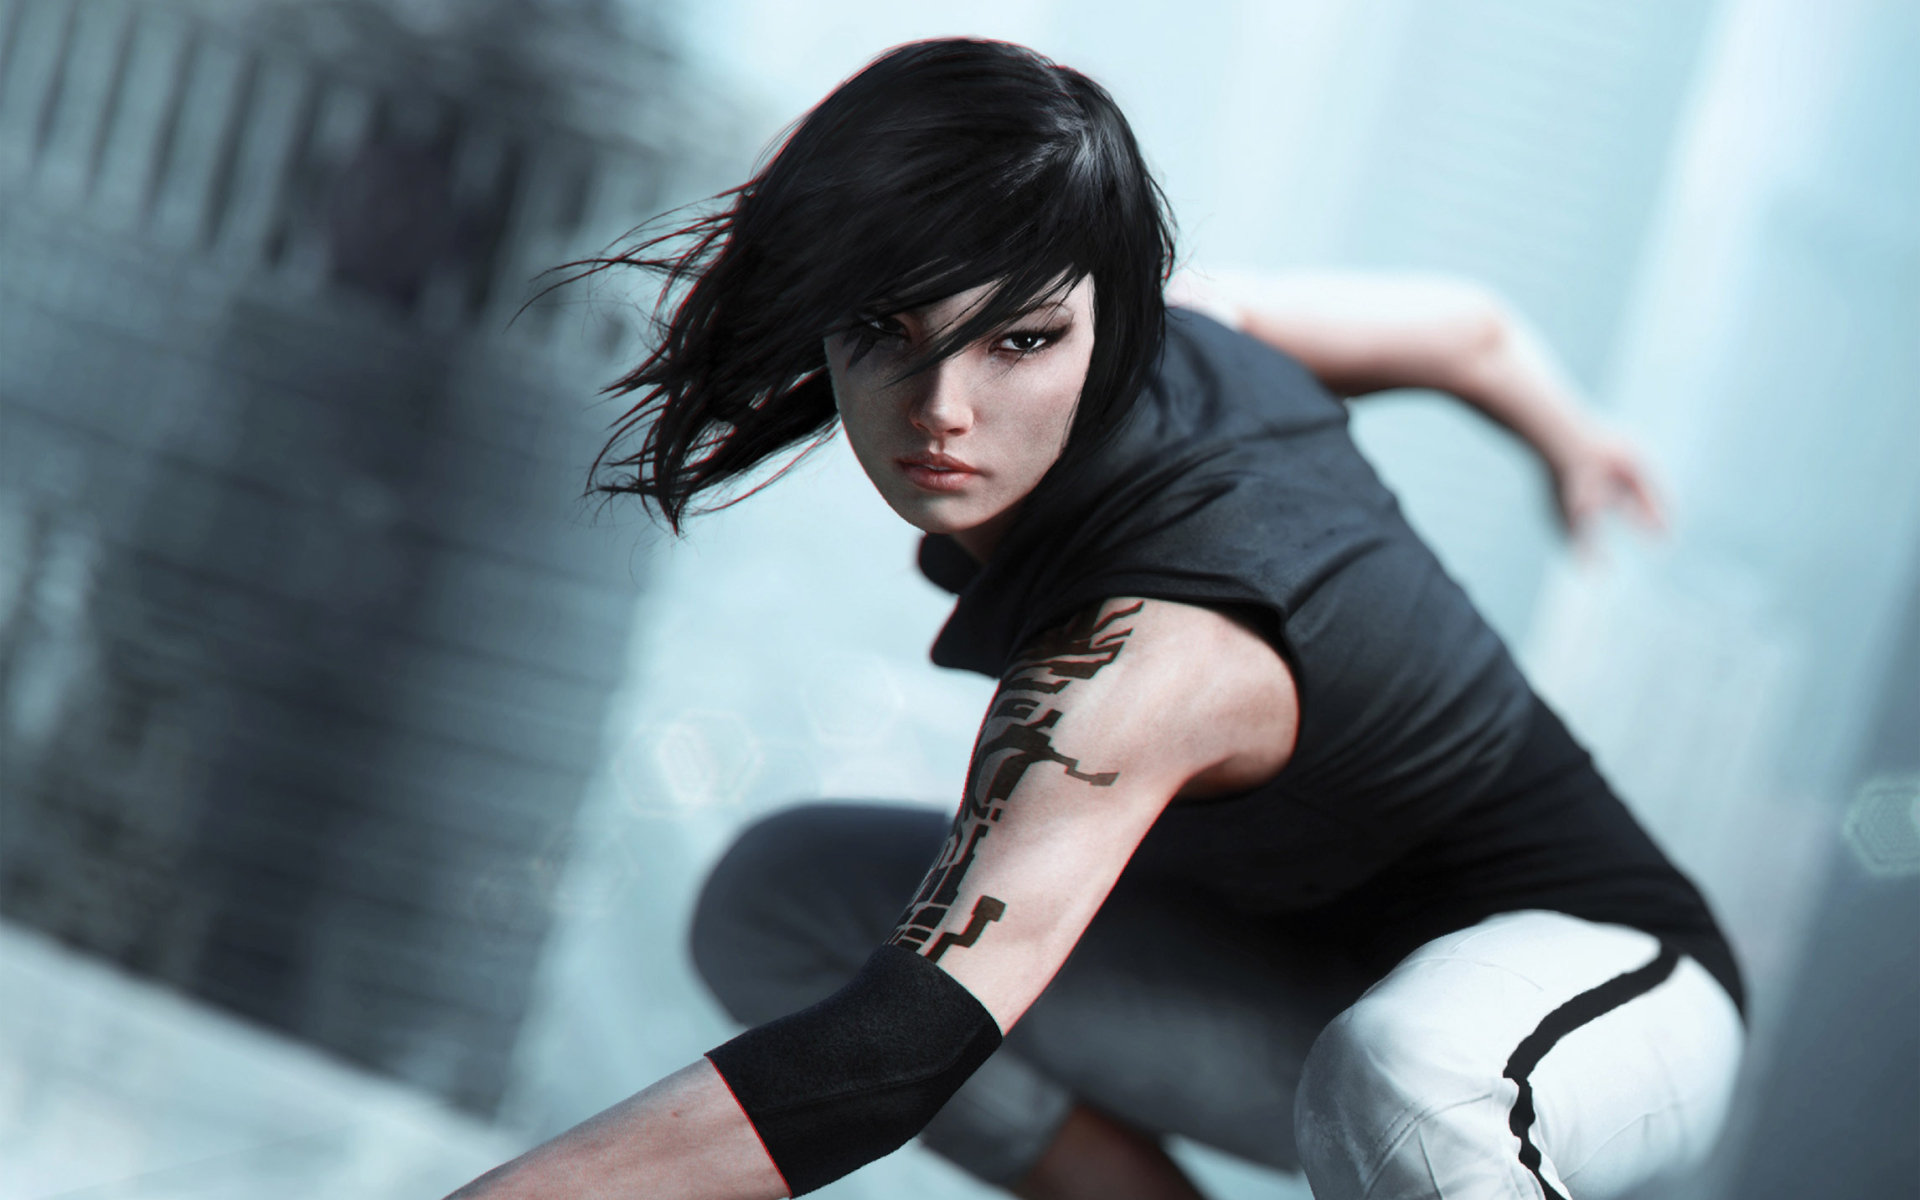 Wallpaper Of Video Game Mirror S Edge Catalyst Background Hd Image